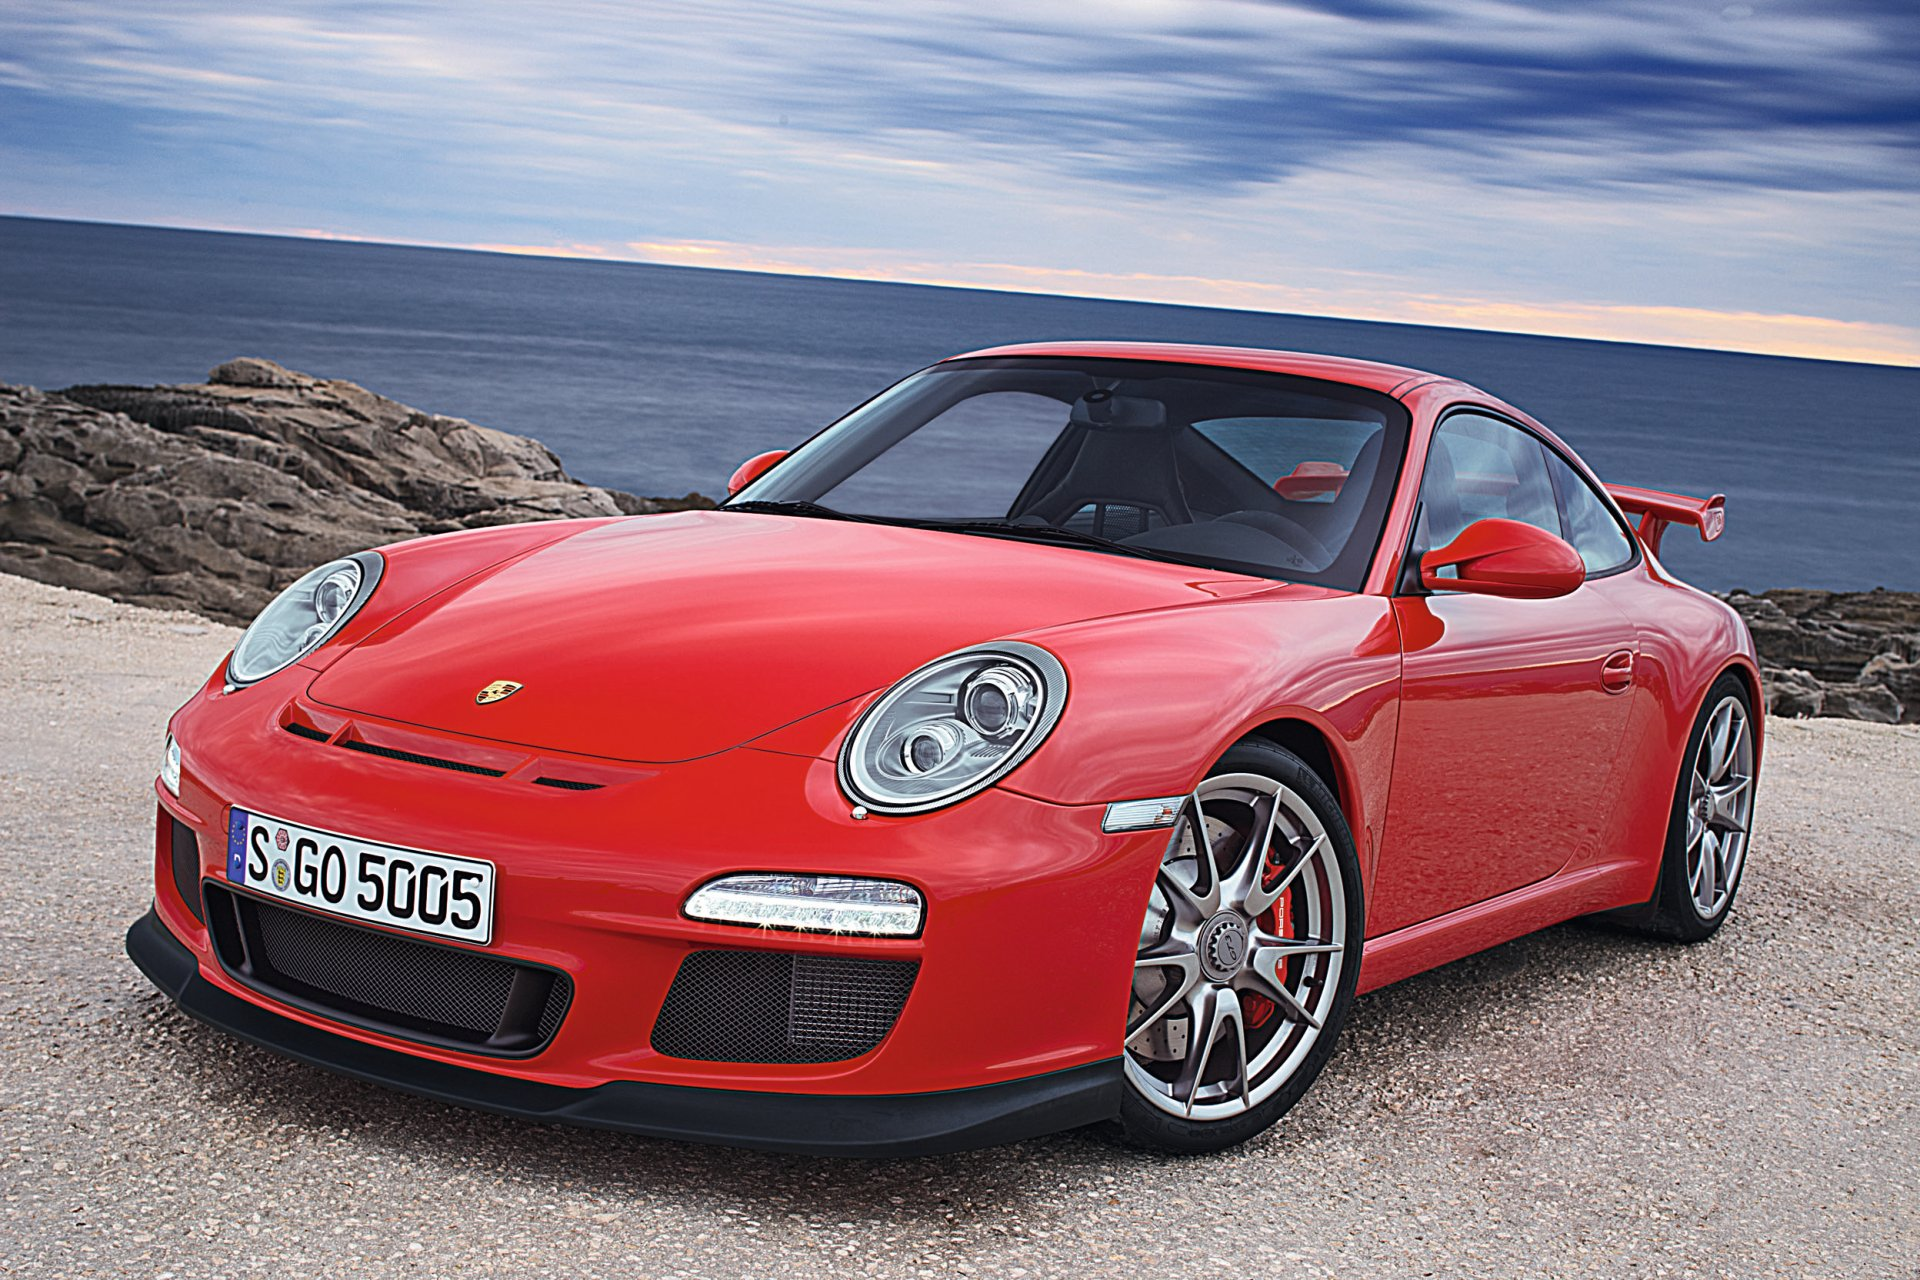 Download This High Resolution Picture of the 2010 Porsche 911 GT3